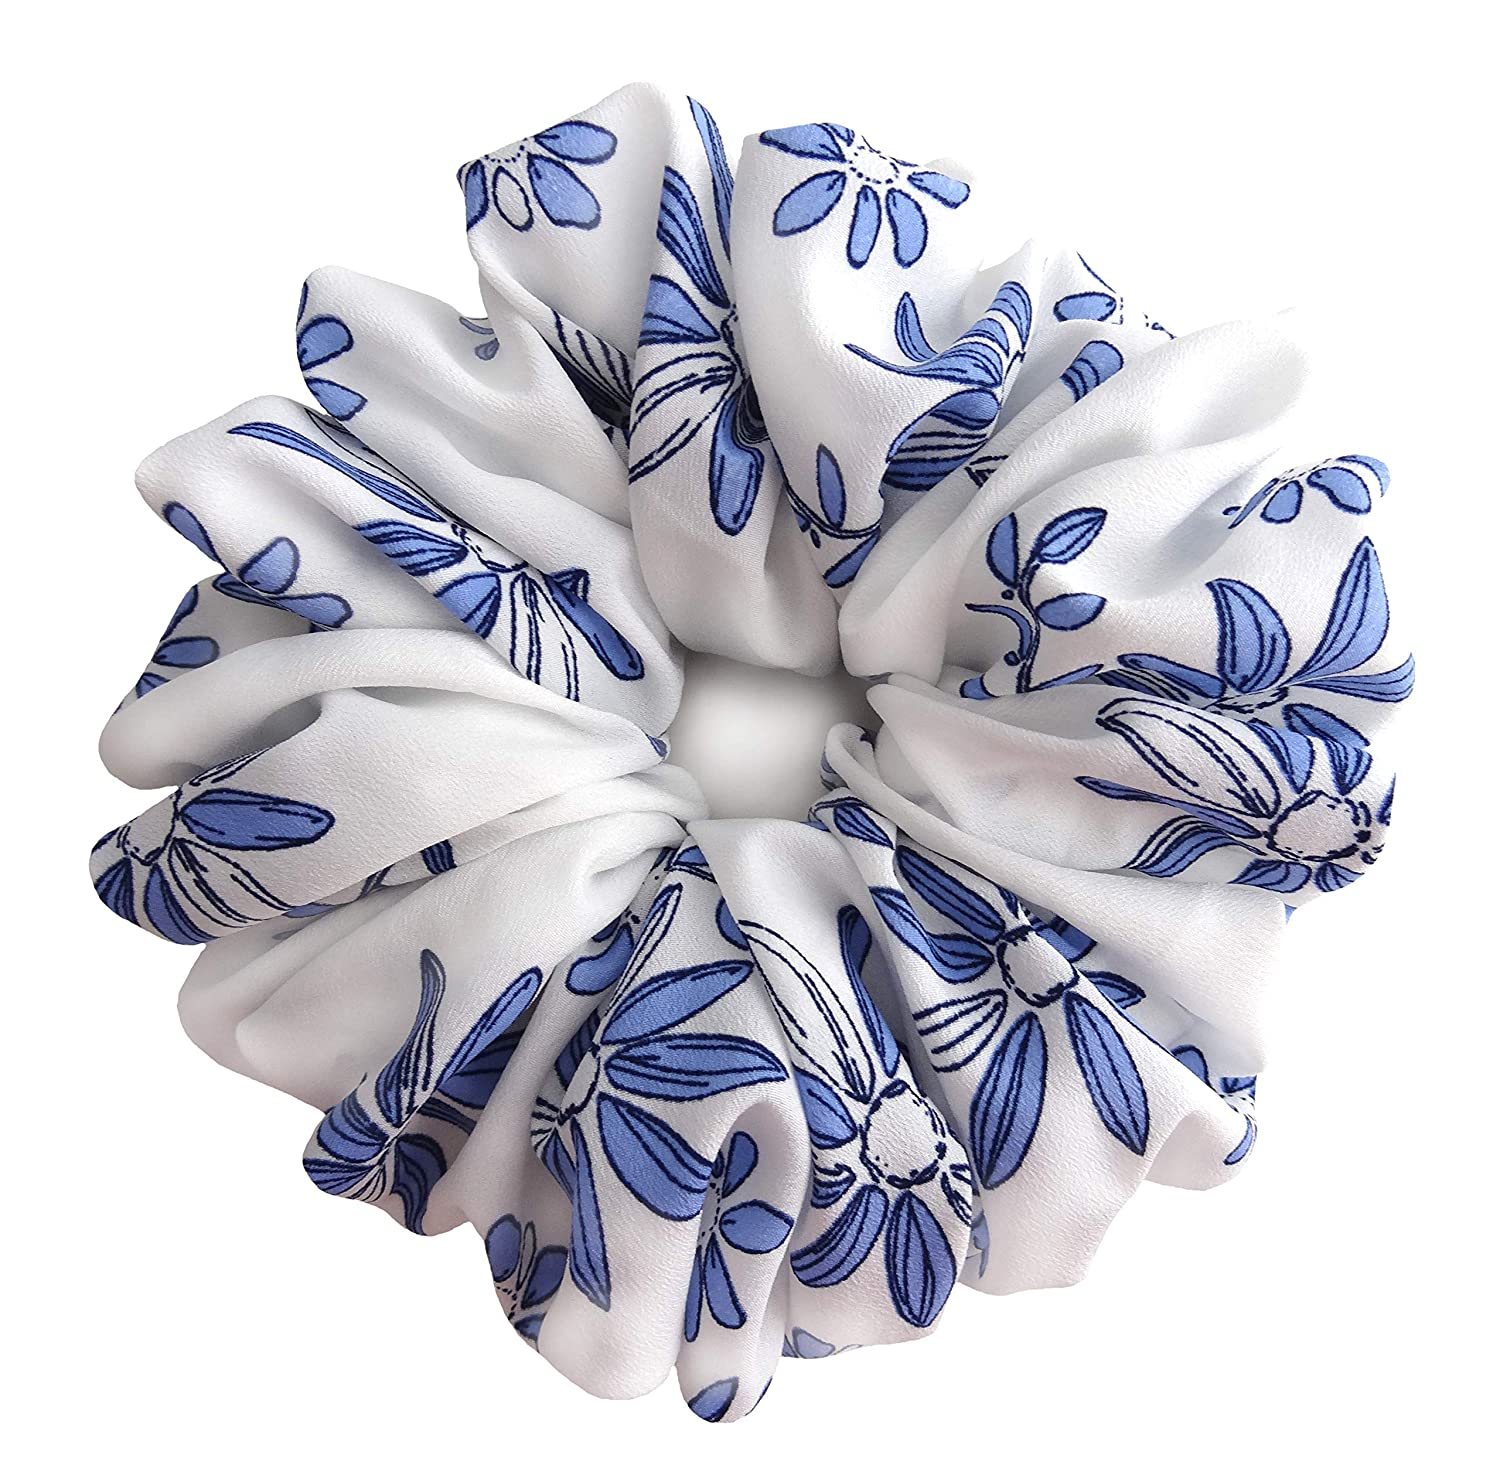 White Blue Crepe Chiffon Large Hair Scrunchies Elastic Hair Band Ponytail Holder Teen Girls Women